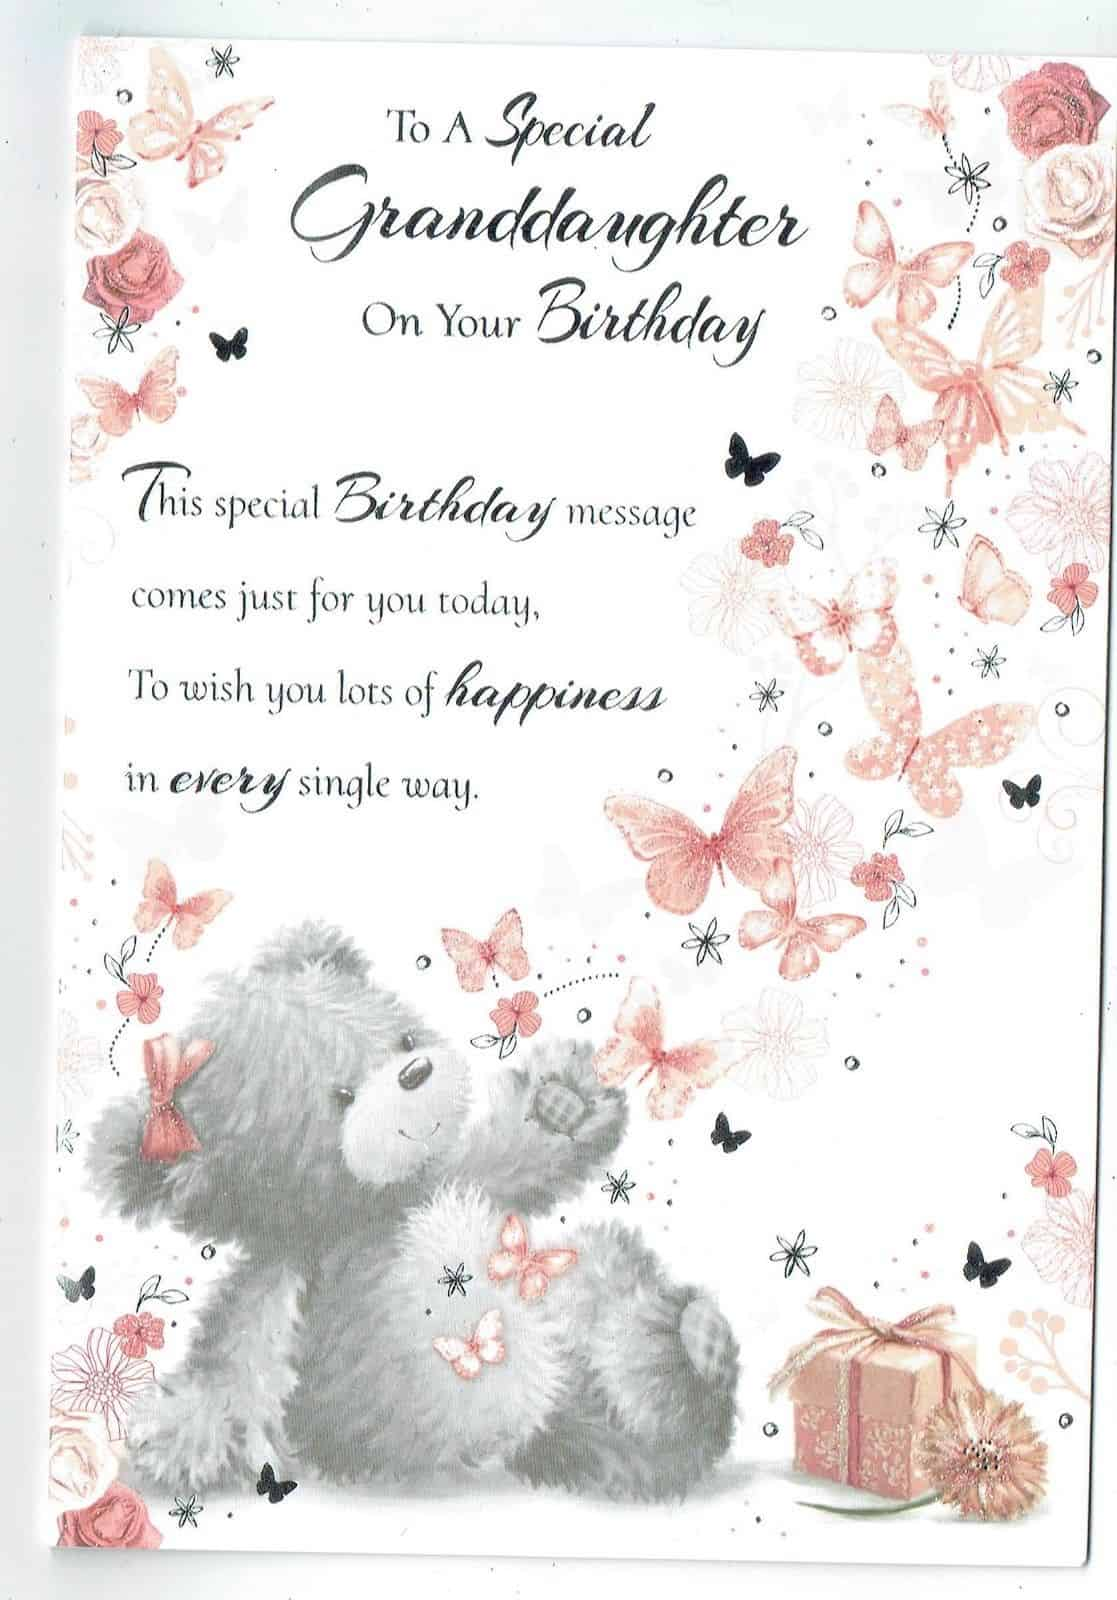 Granddaughter Birthday Card With ButterfliesTeddy Bear Sentiment Verse